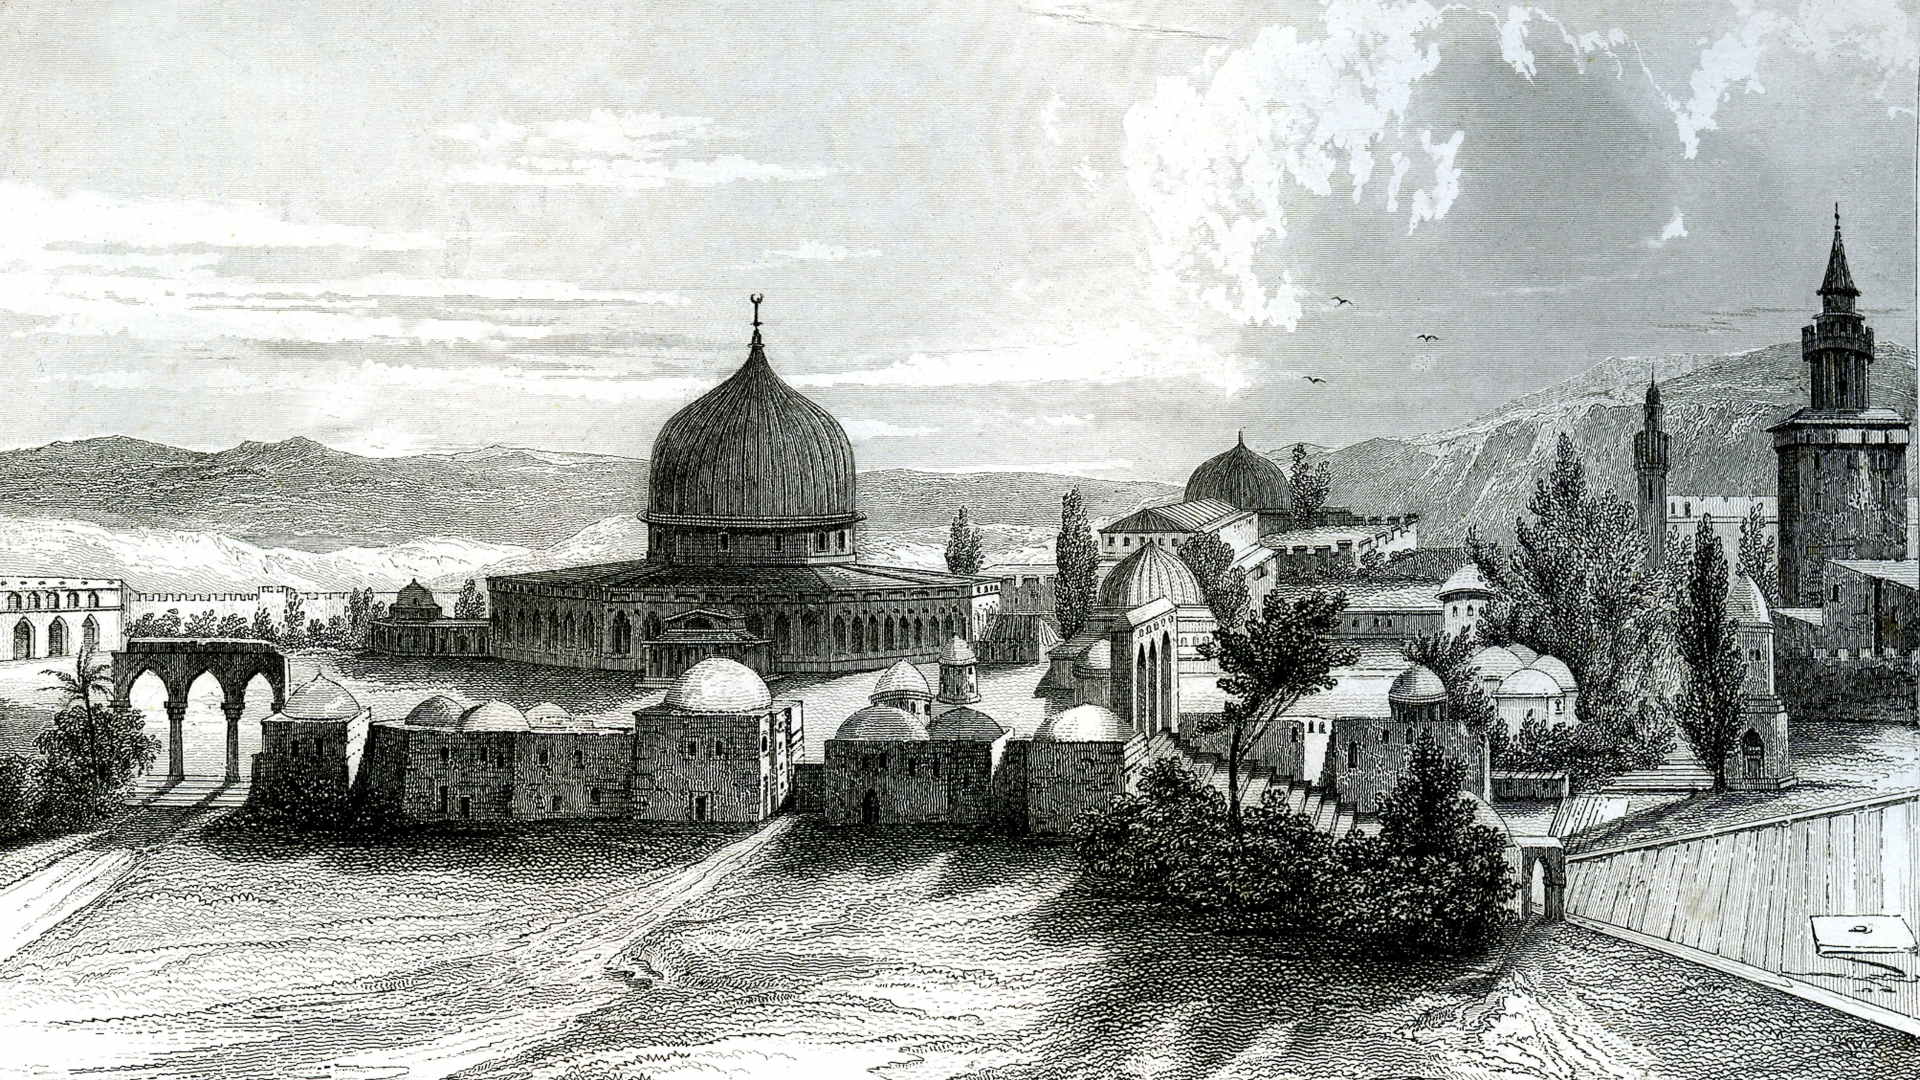 Jerusalem was one of the holiest places in the eastern Mediterranean—for Muslims, Christians and Jews alike. (Credit: Photo12/UIG/Getty Images)